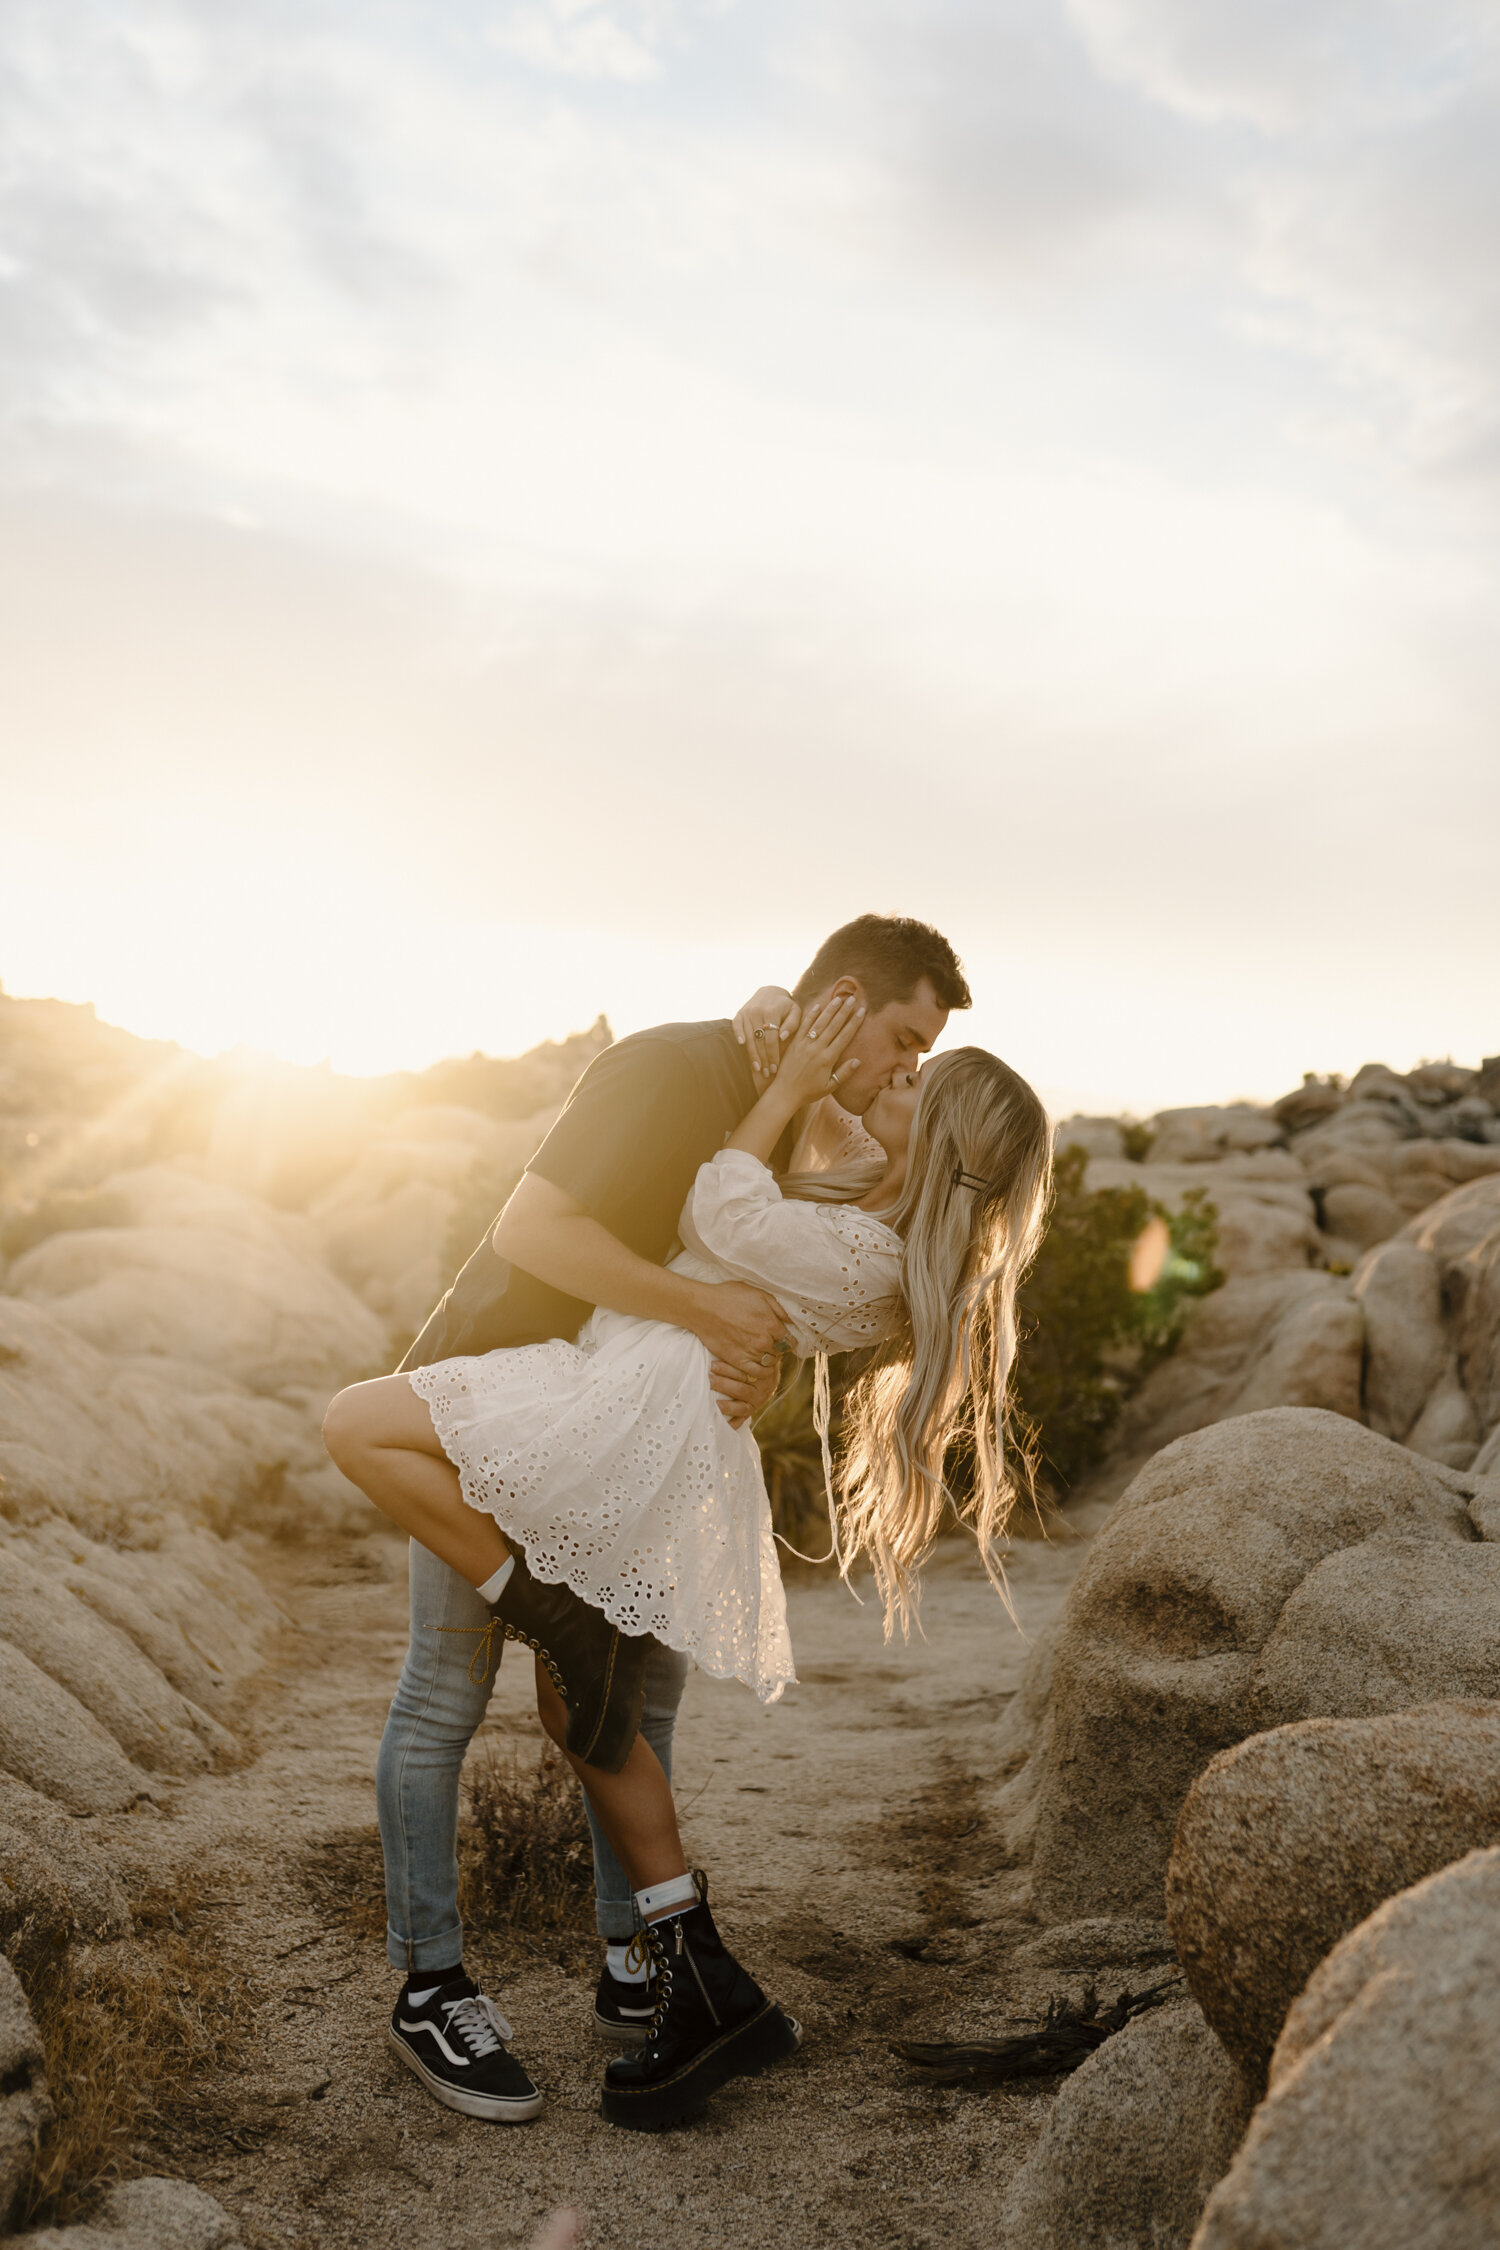 Romantic golden hour engagement session in Joshua Tree by Kayli LaFon Photography